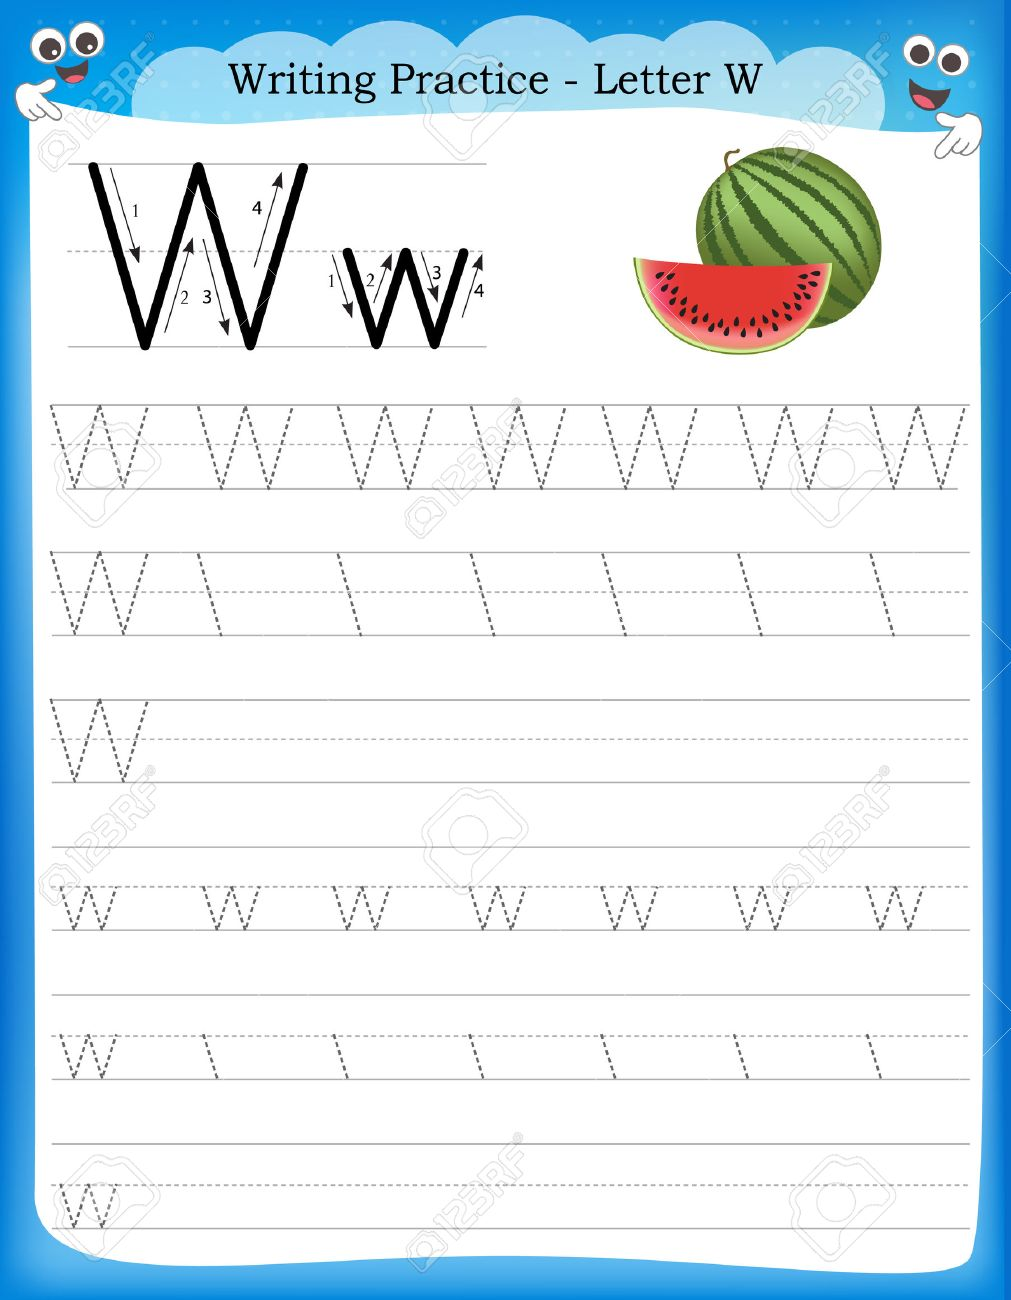 Writing Practice Letter W Printable Worksheet With Clip Art – Letter W Worksheets for Preschool